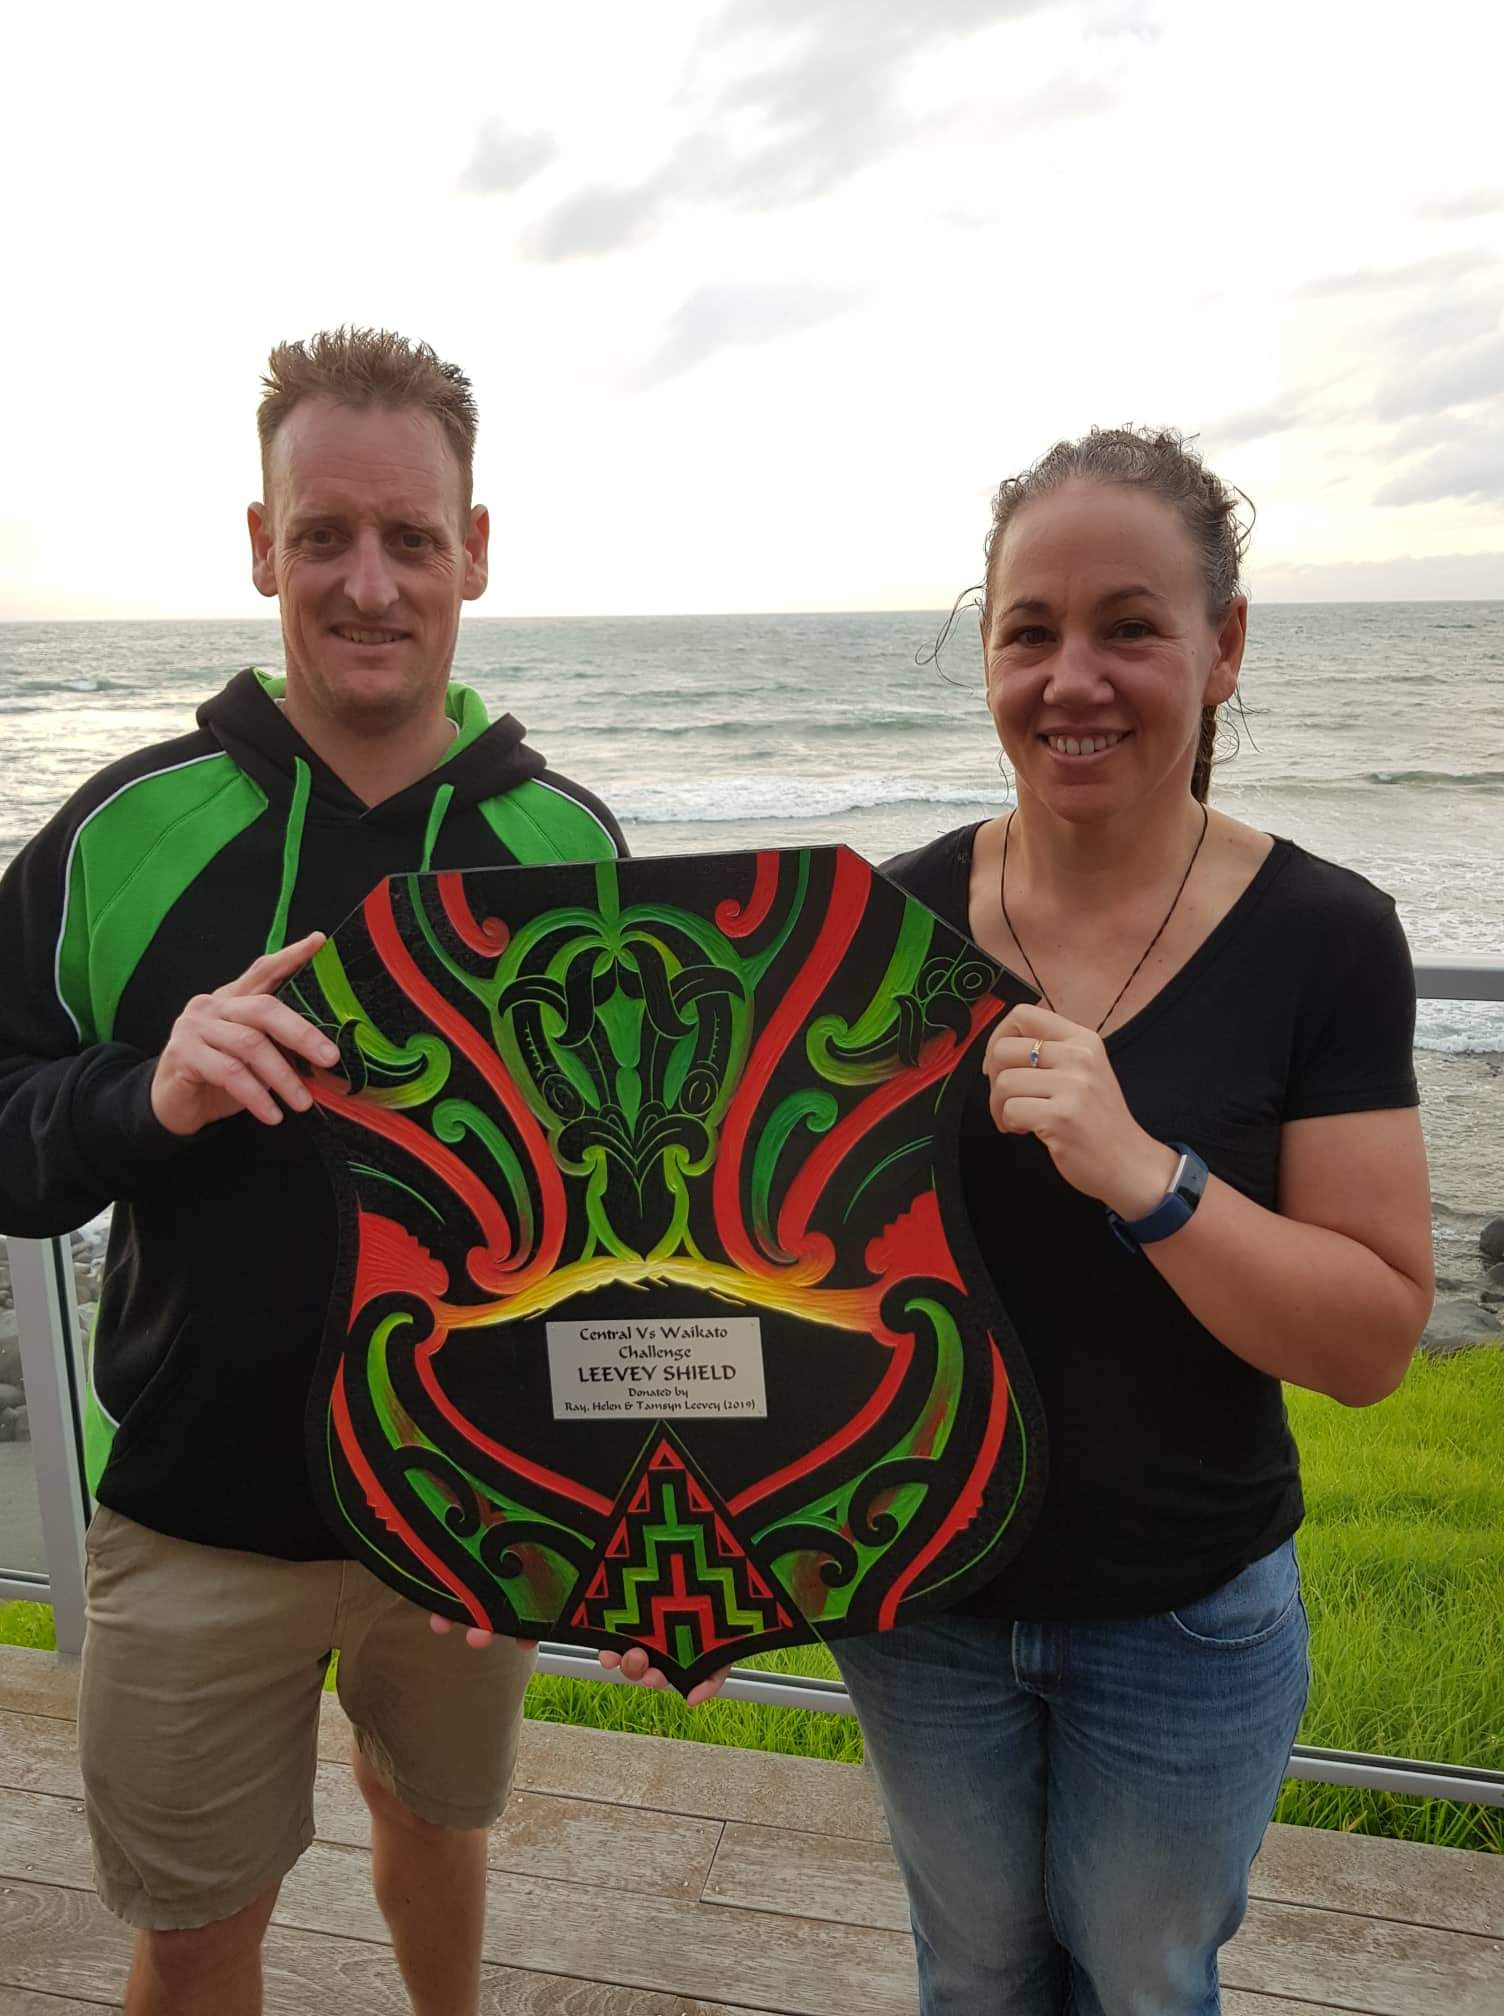 Leevey Shield 2019